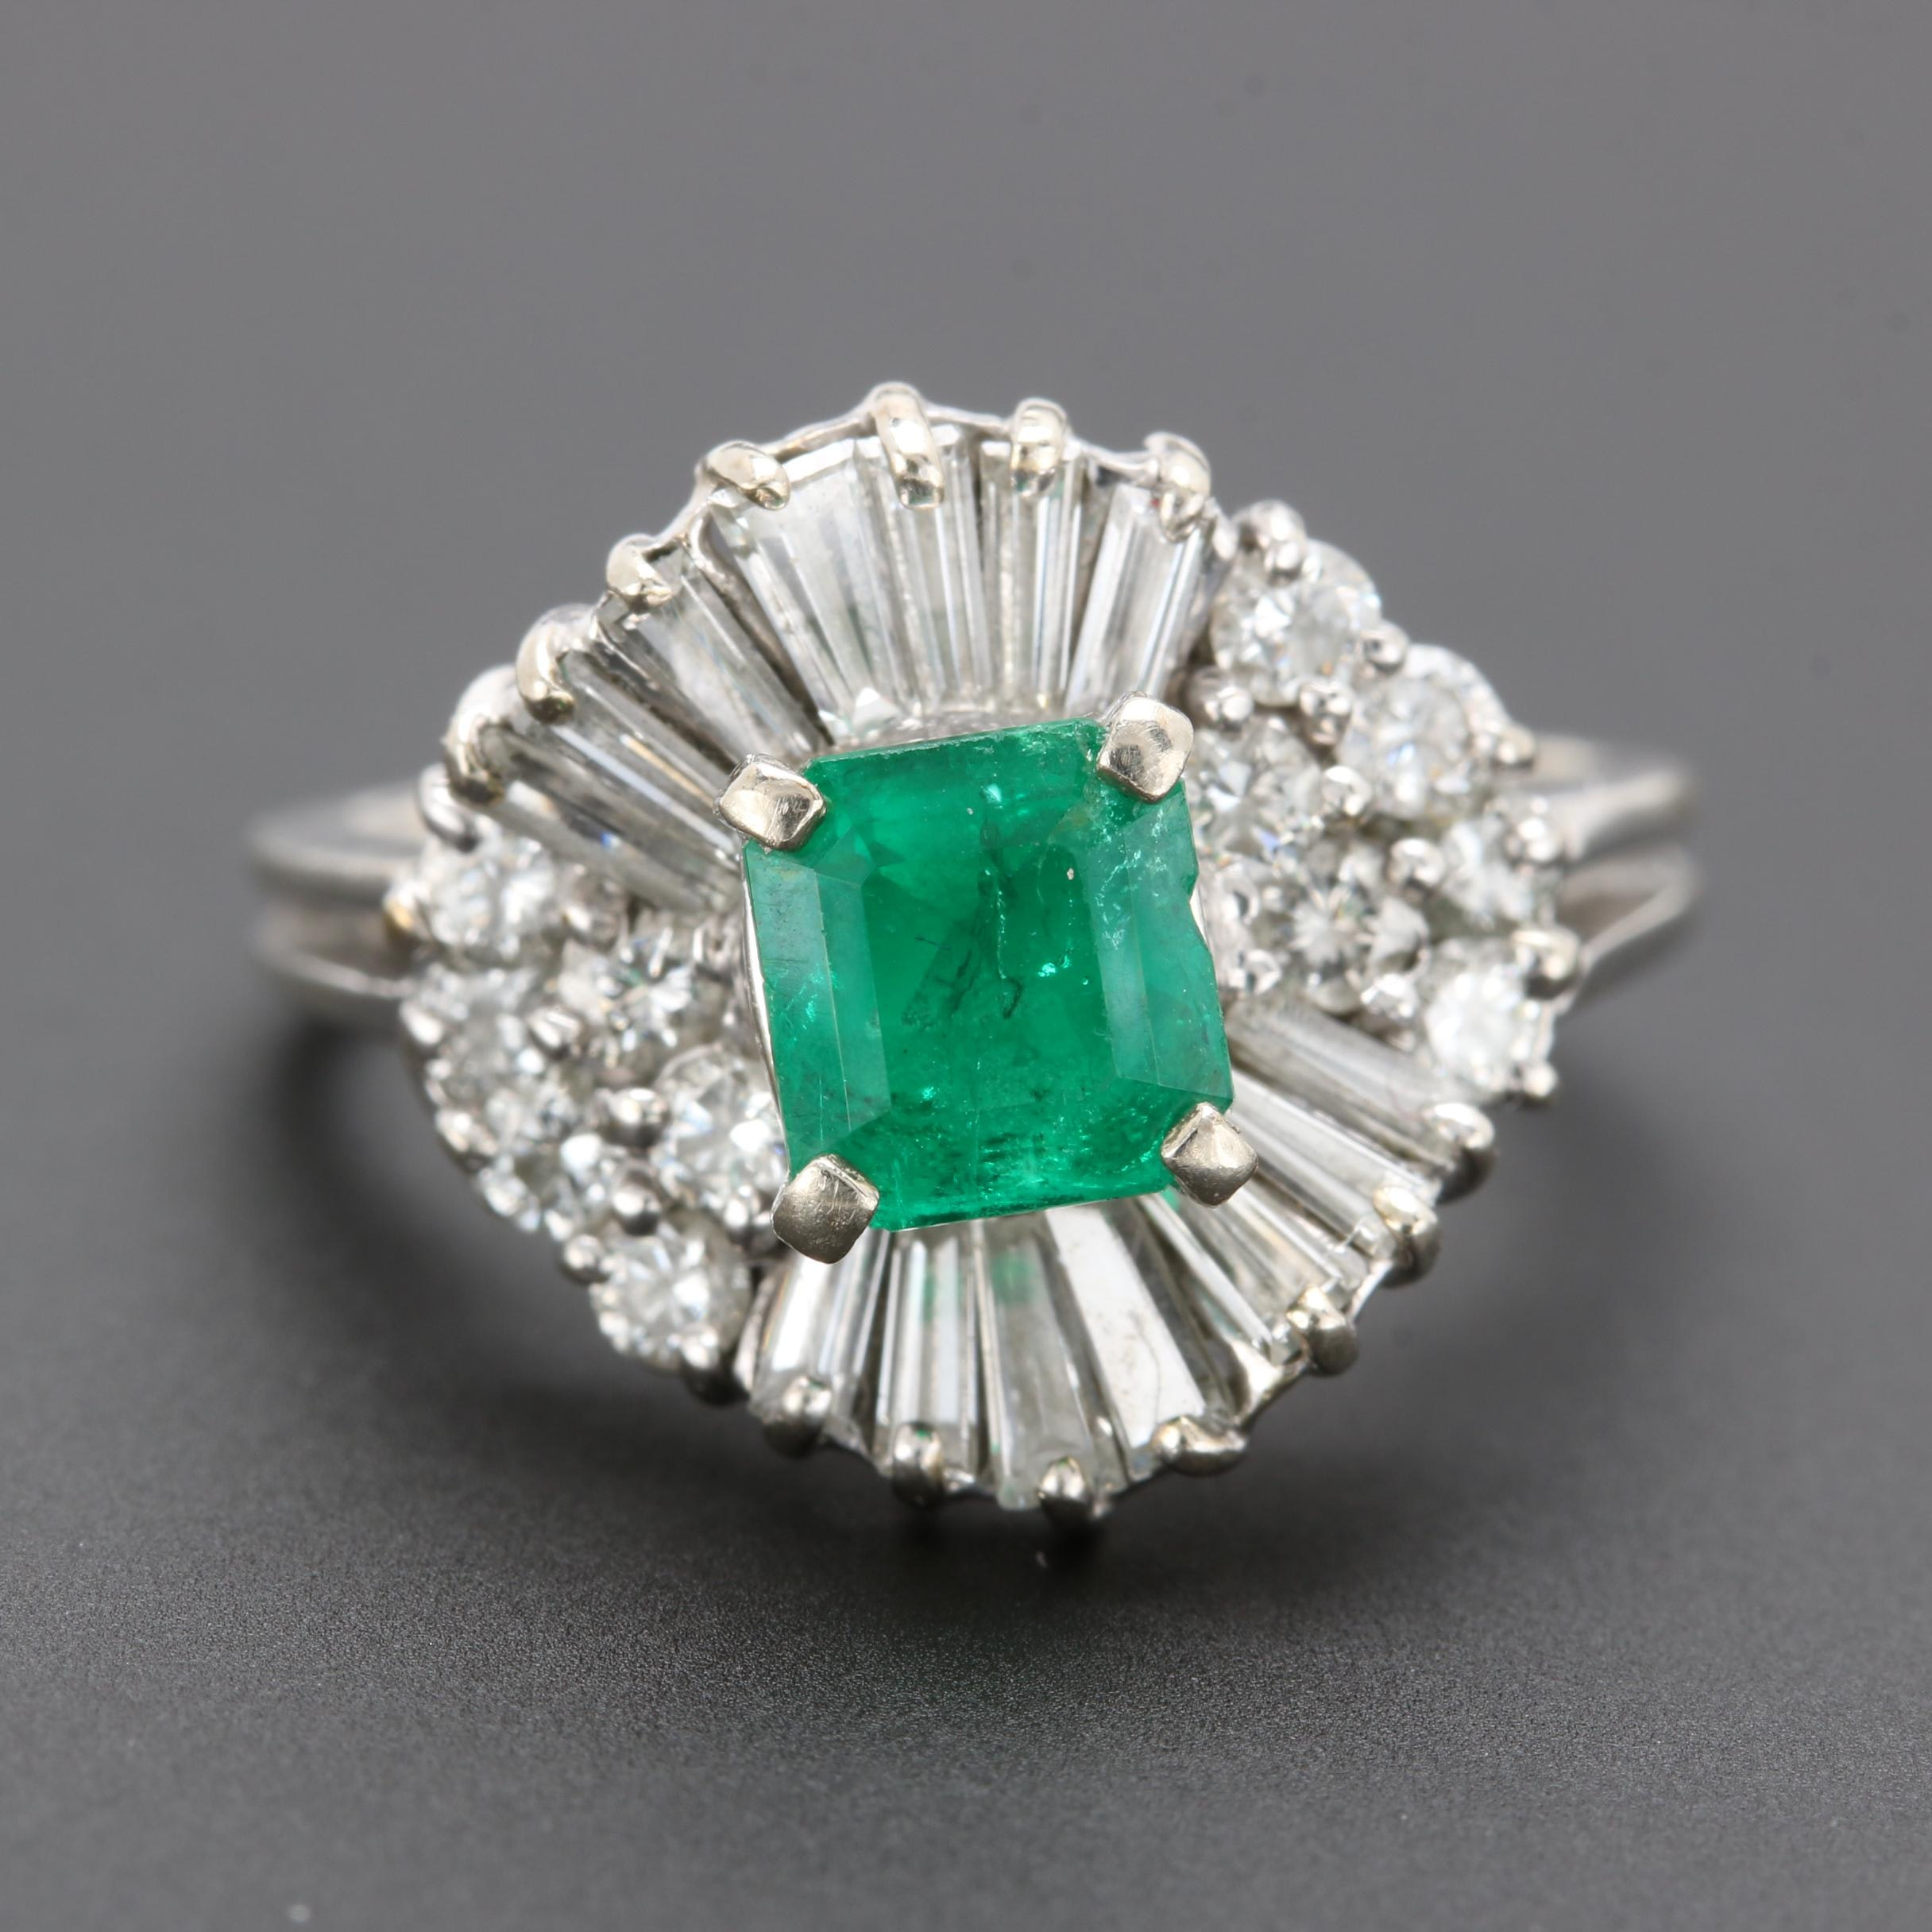 14K and 18K White Gold Emerald and 1.27 CTW Diamond Ring